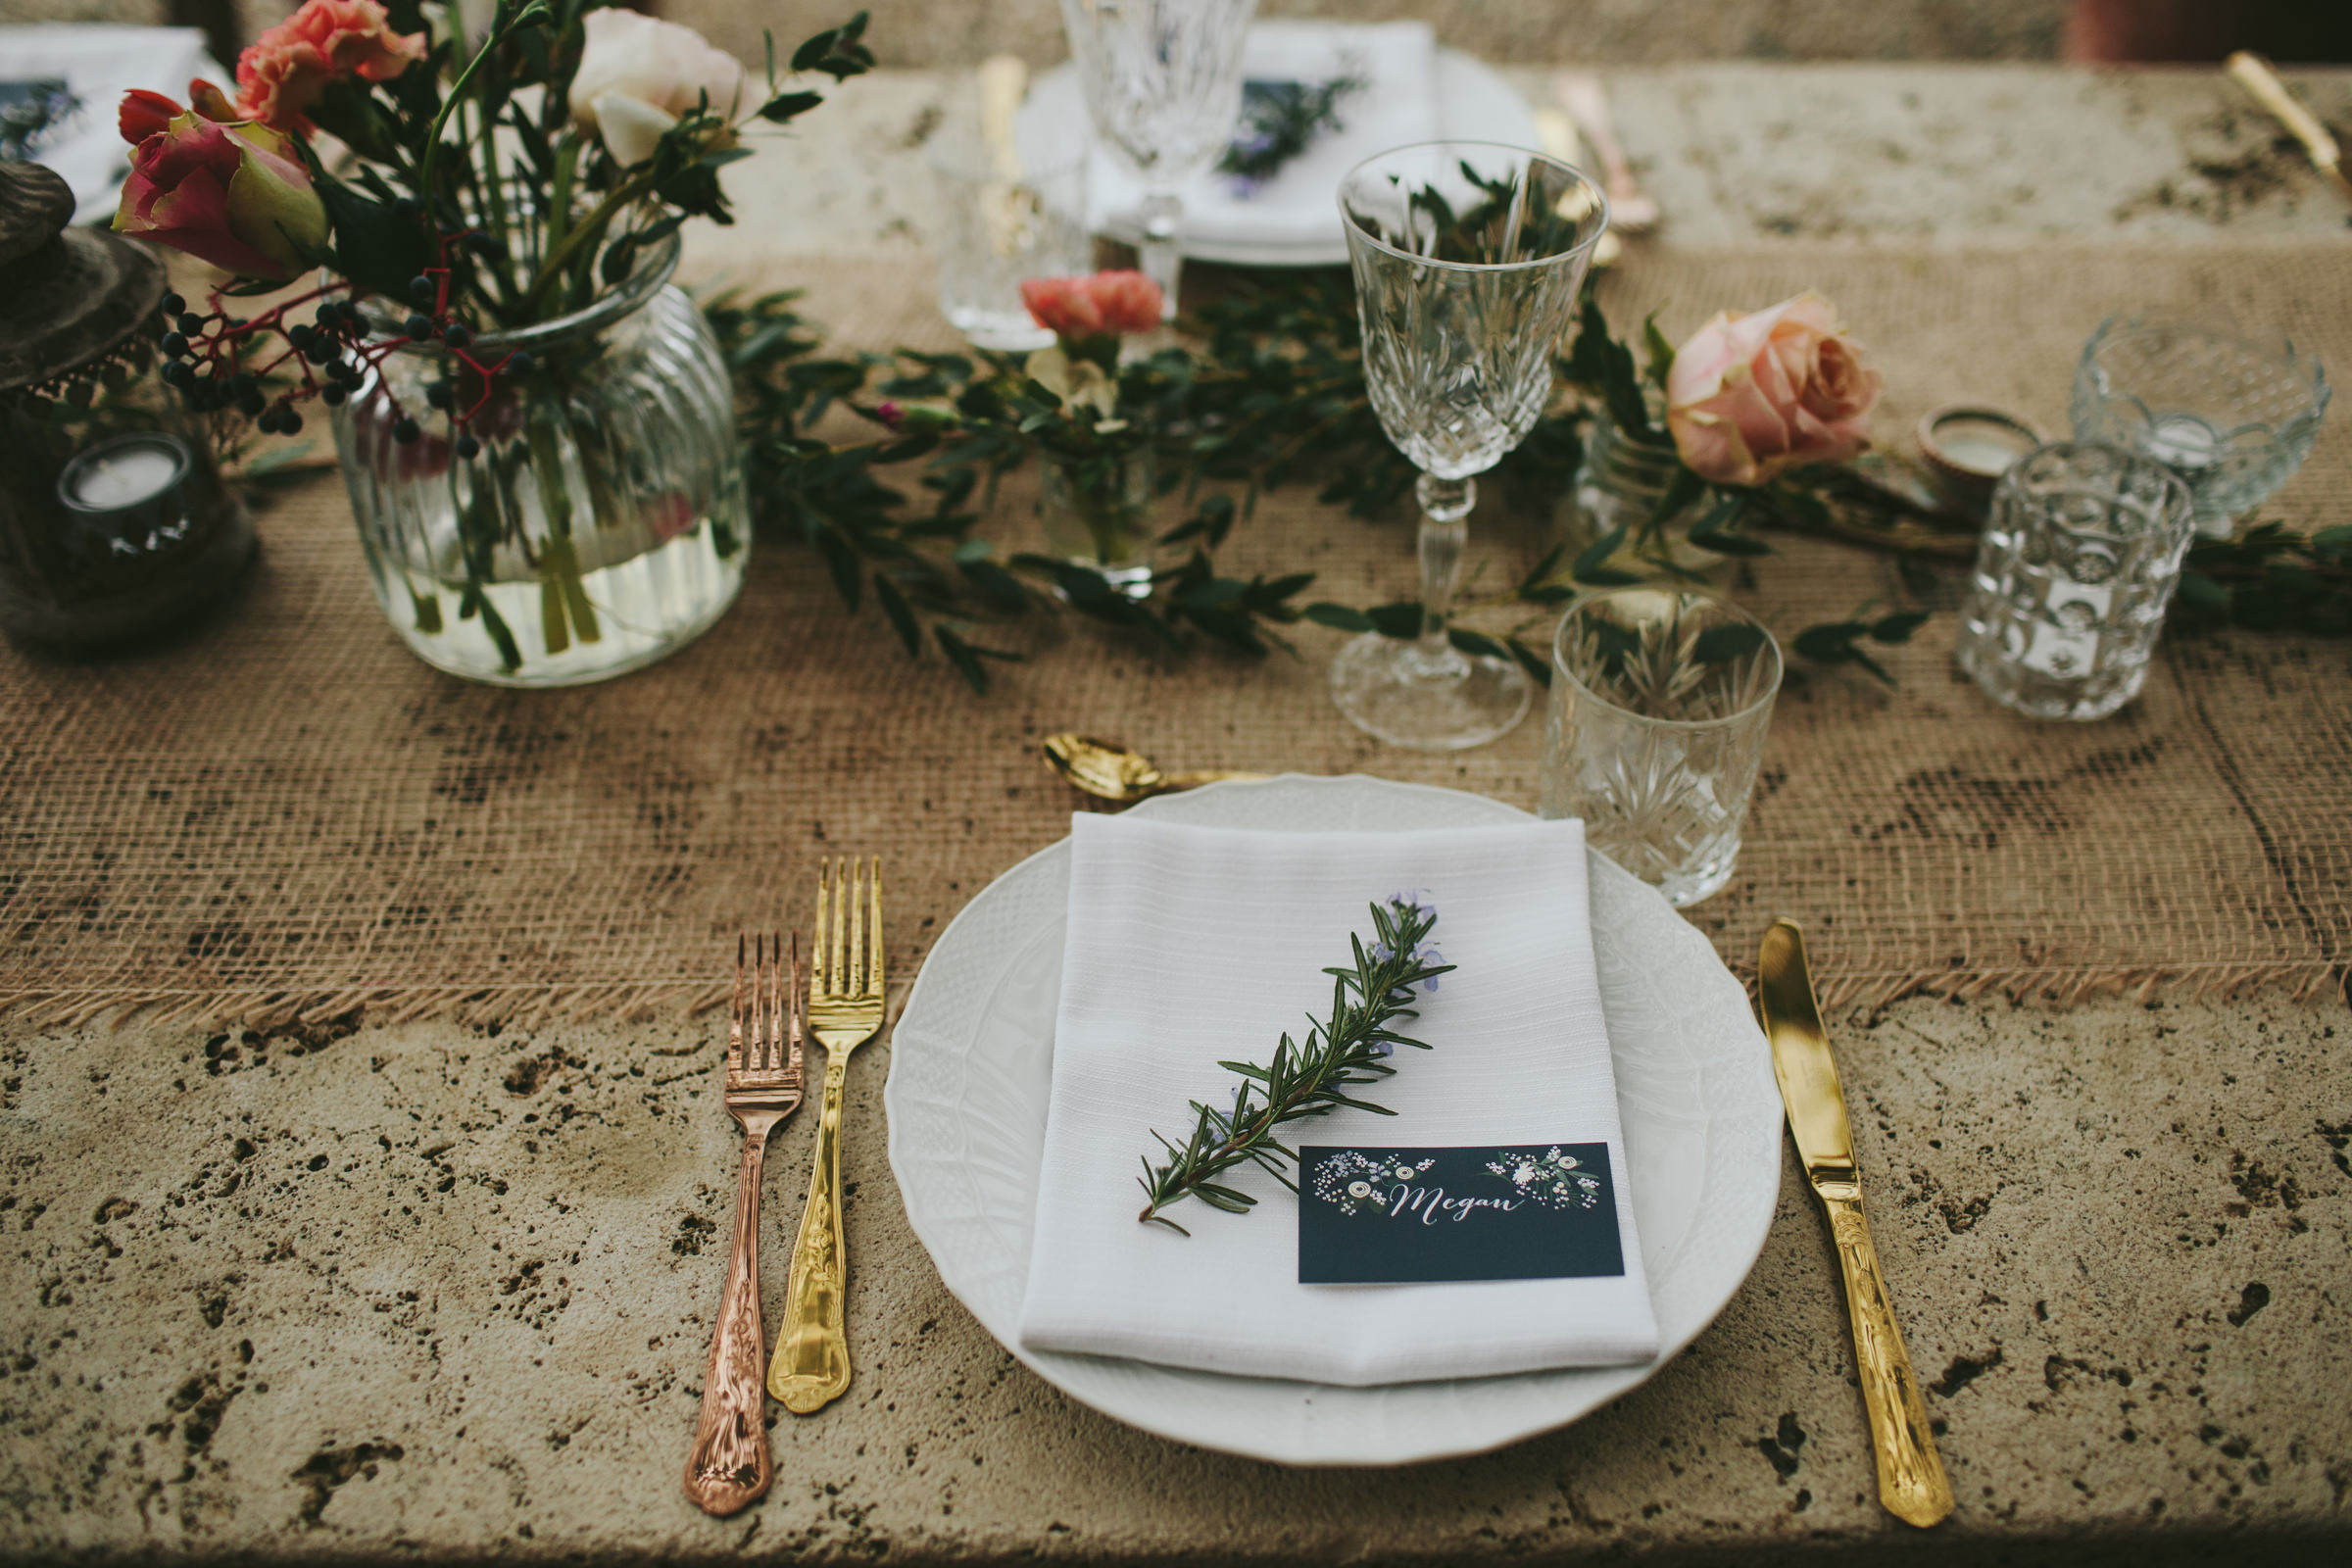 Detail of place setting - photo by Melia Lucida